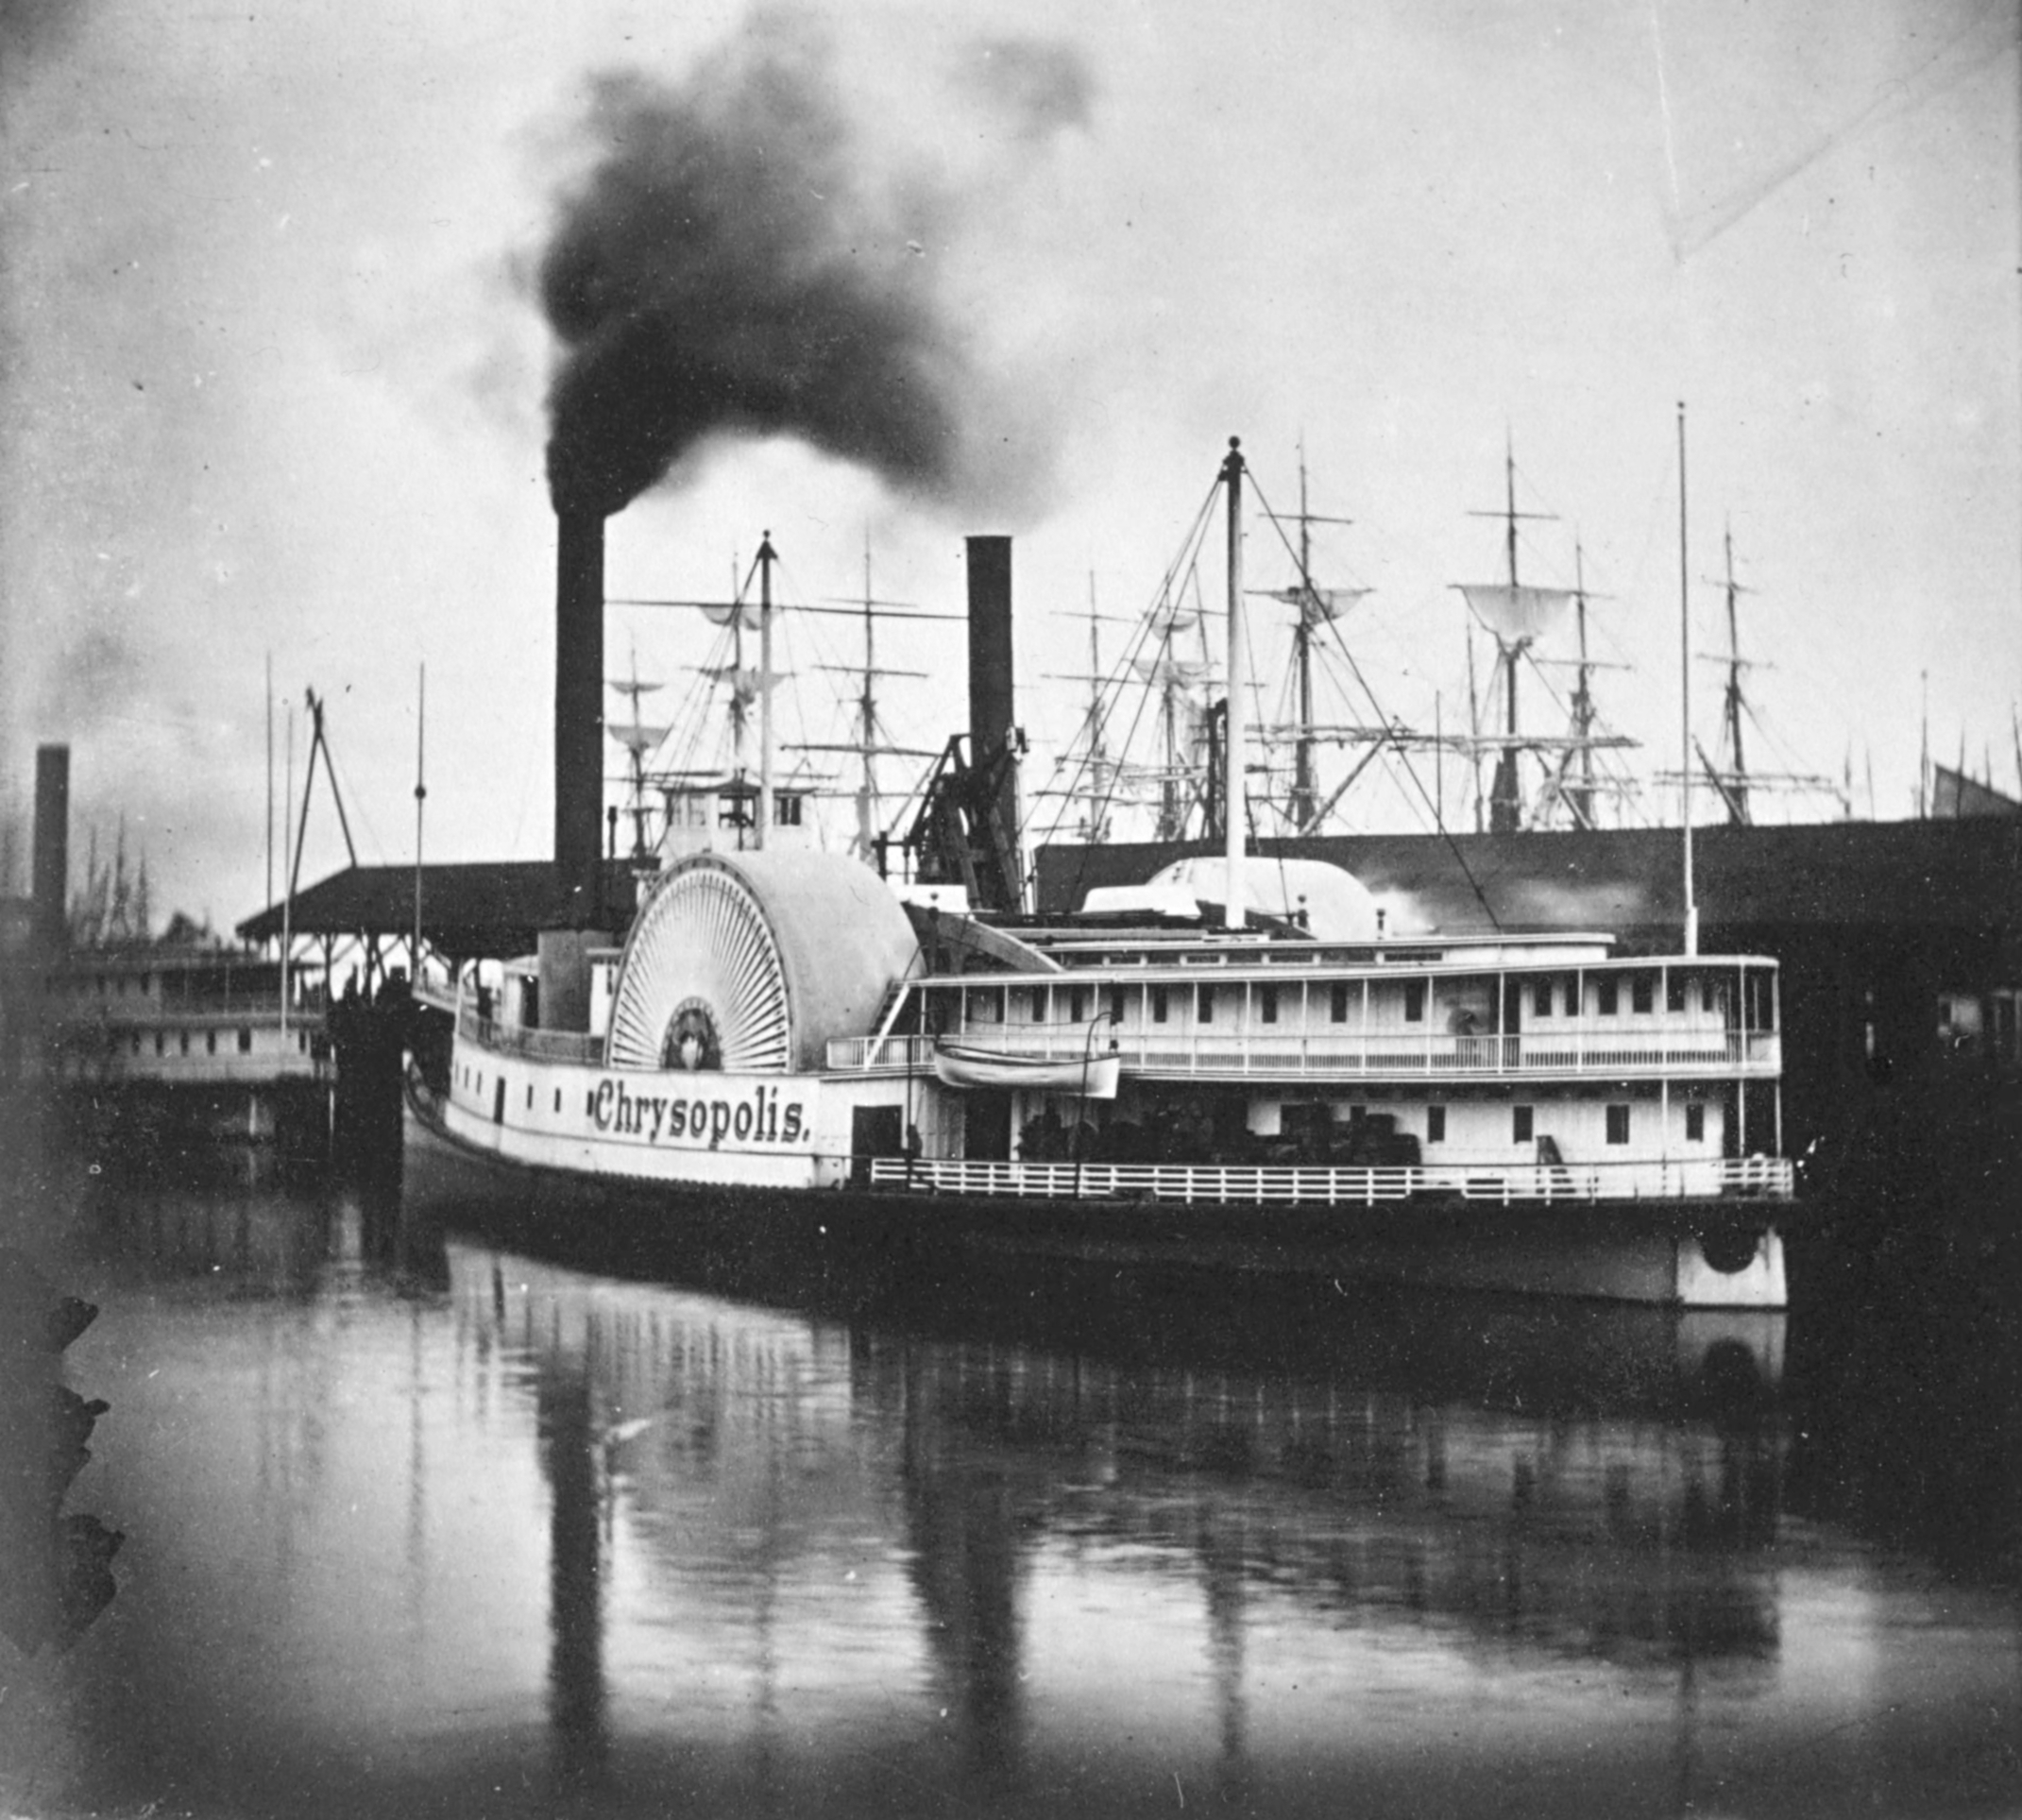 Chrysopolis, one of several large steamboats that served for transportation on the river during the California Gold Rush